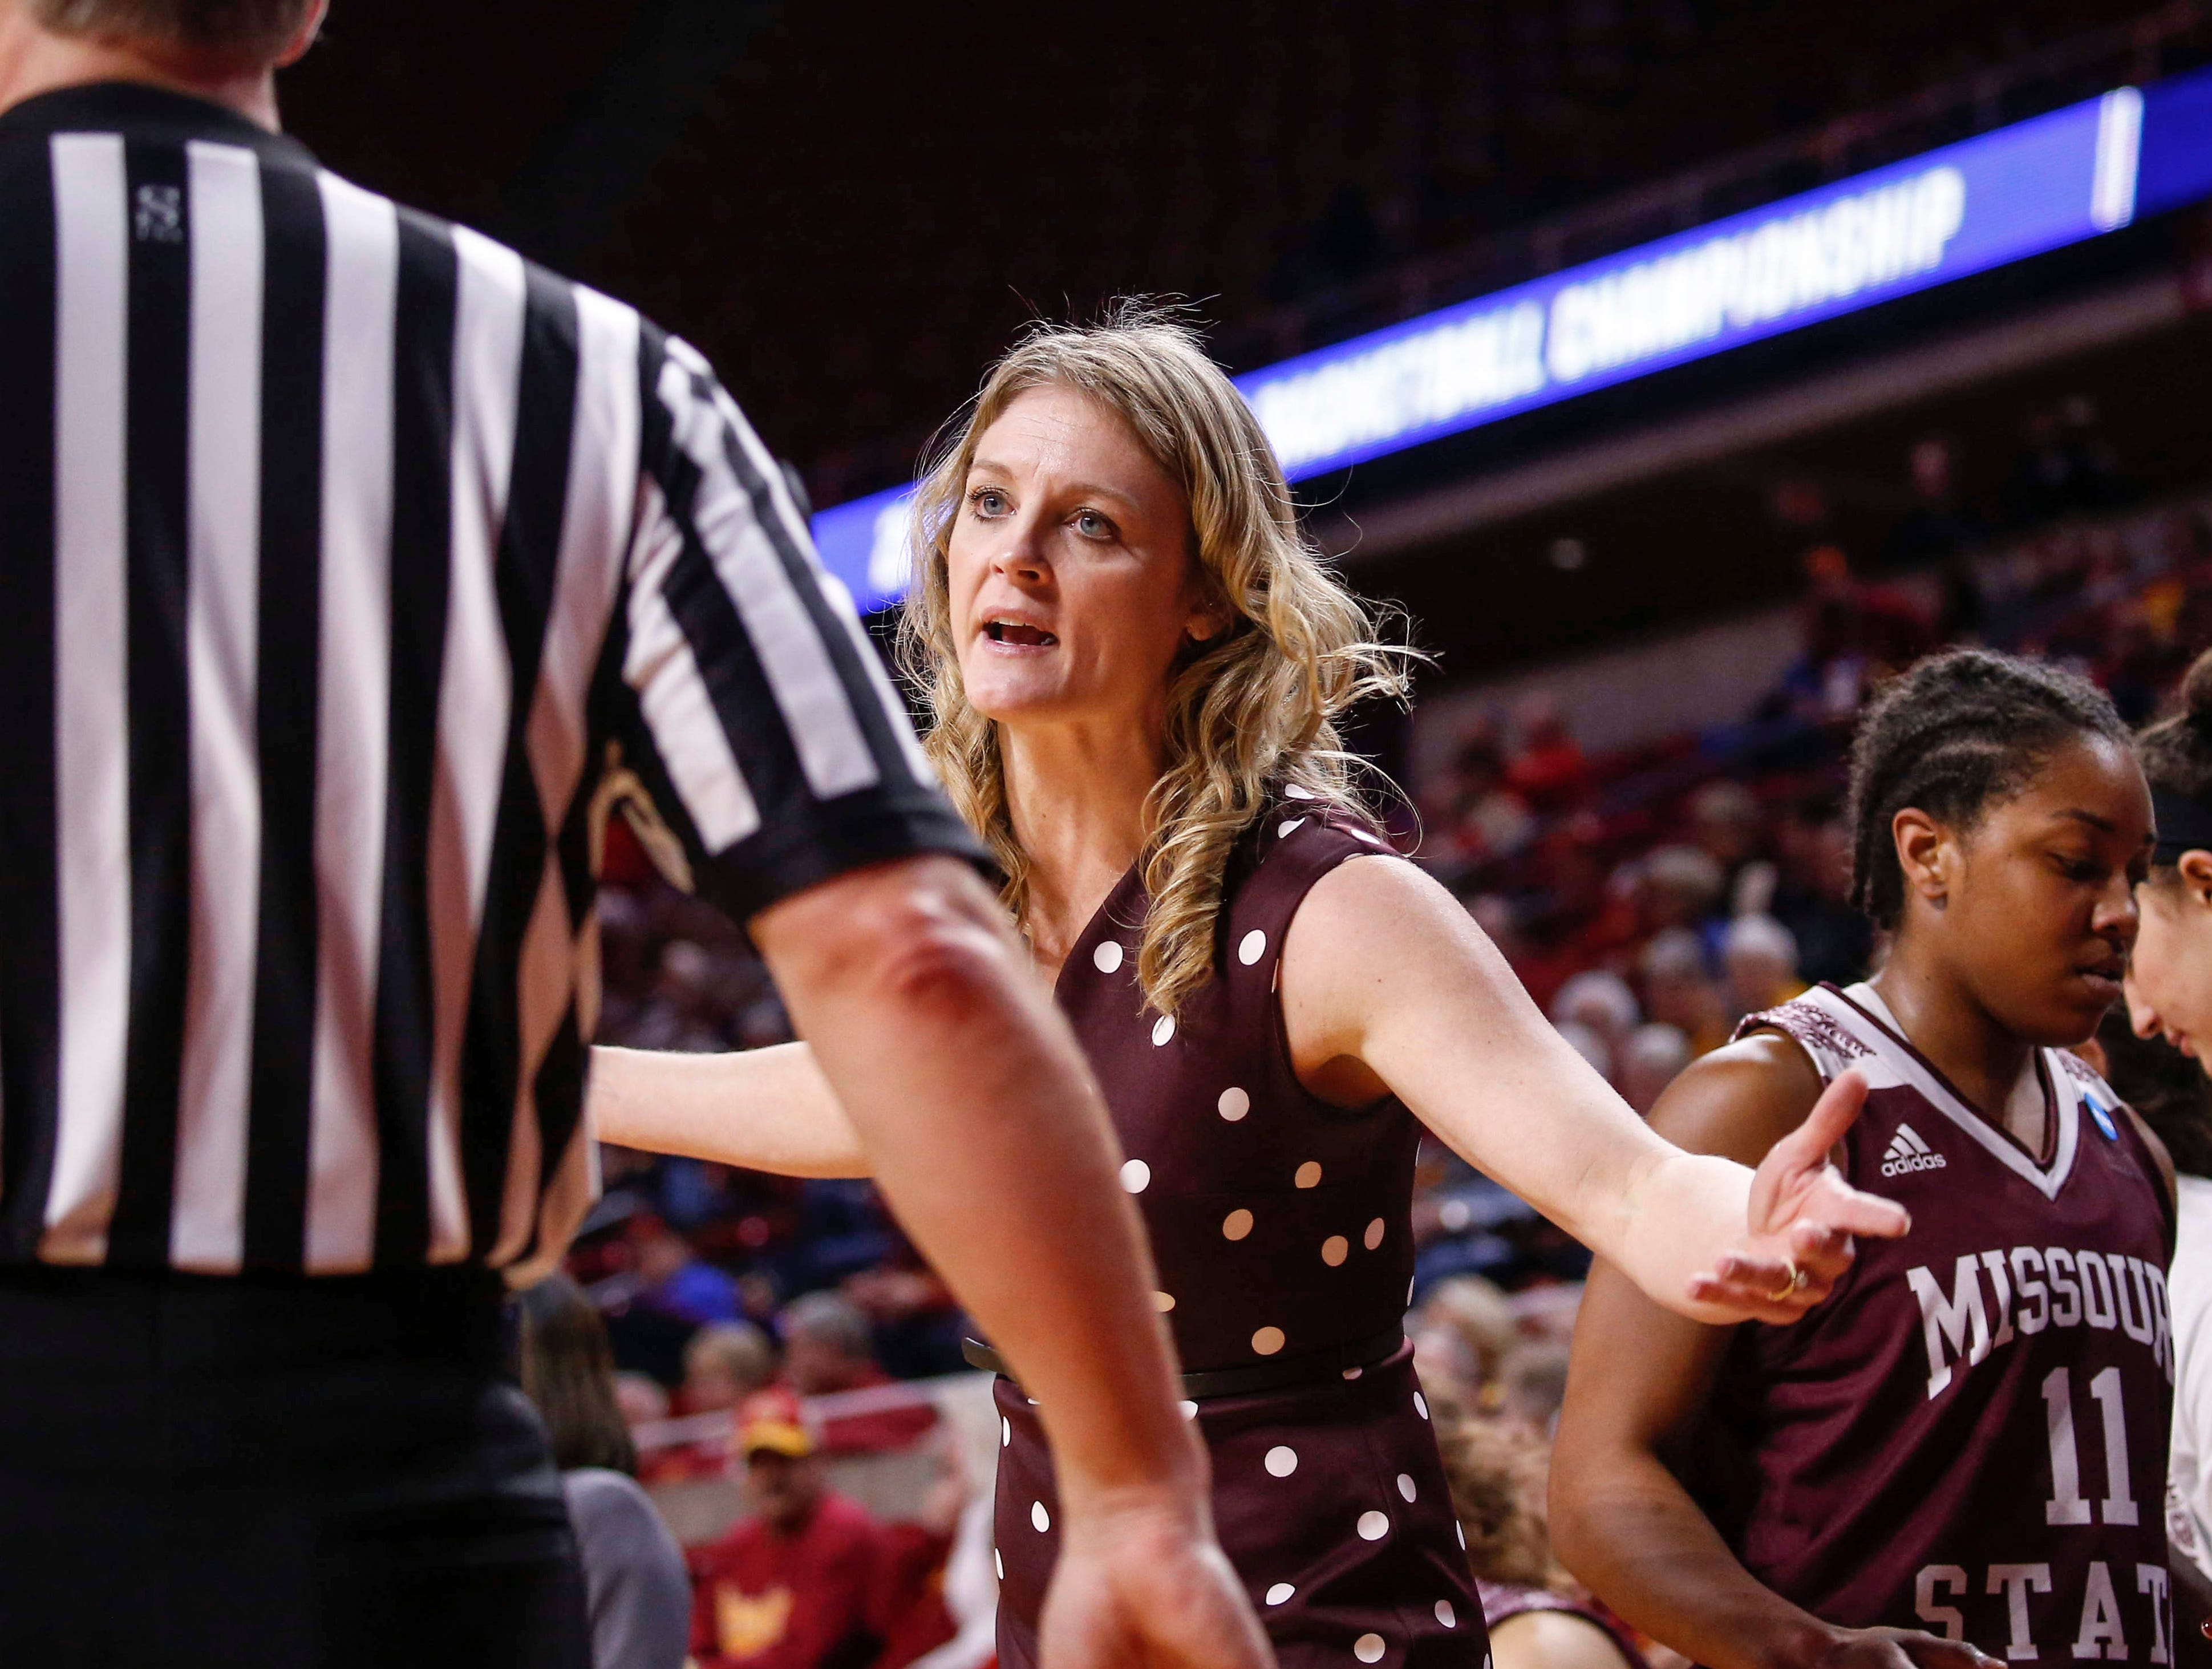 Missouri State women's head basketball coach Kellie Harper argues a call with an official in the second quarter against DePaul on Saturday, March 23, 2019, at Hilton Coliseum in Ames.